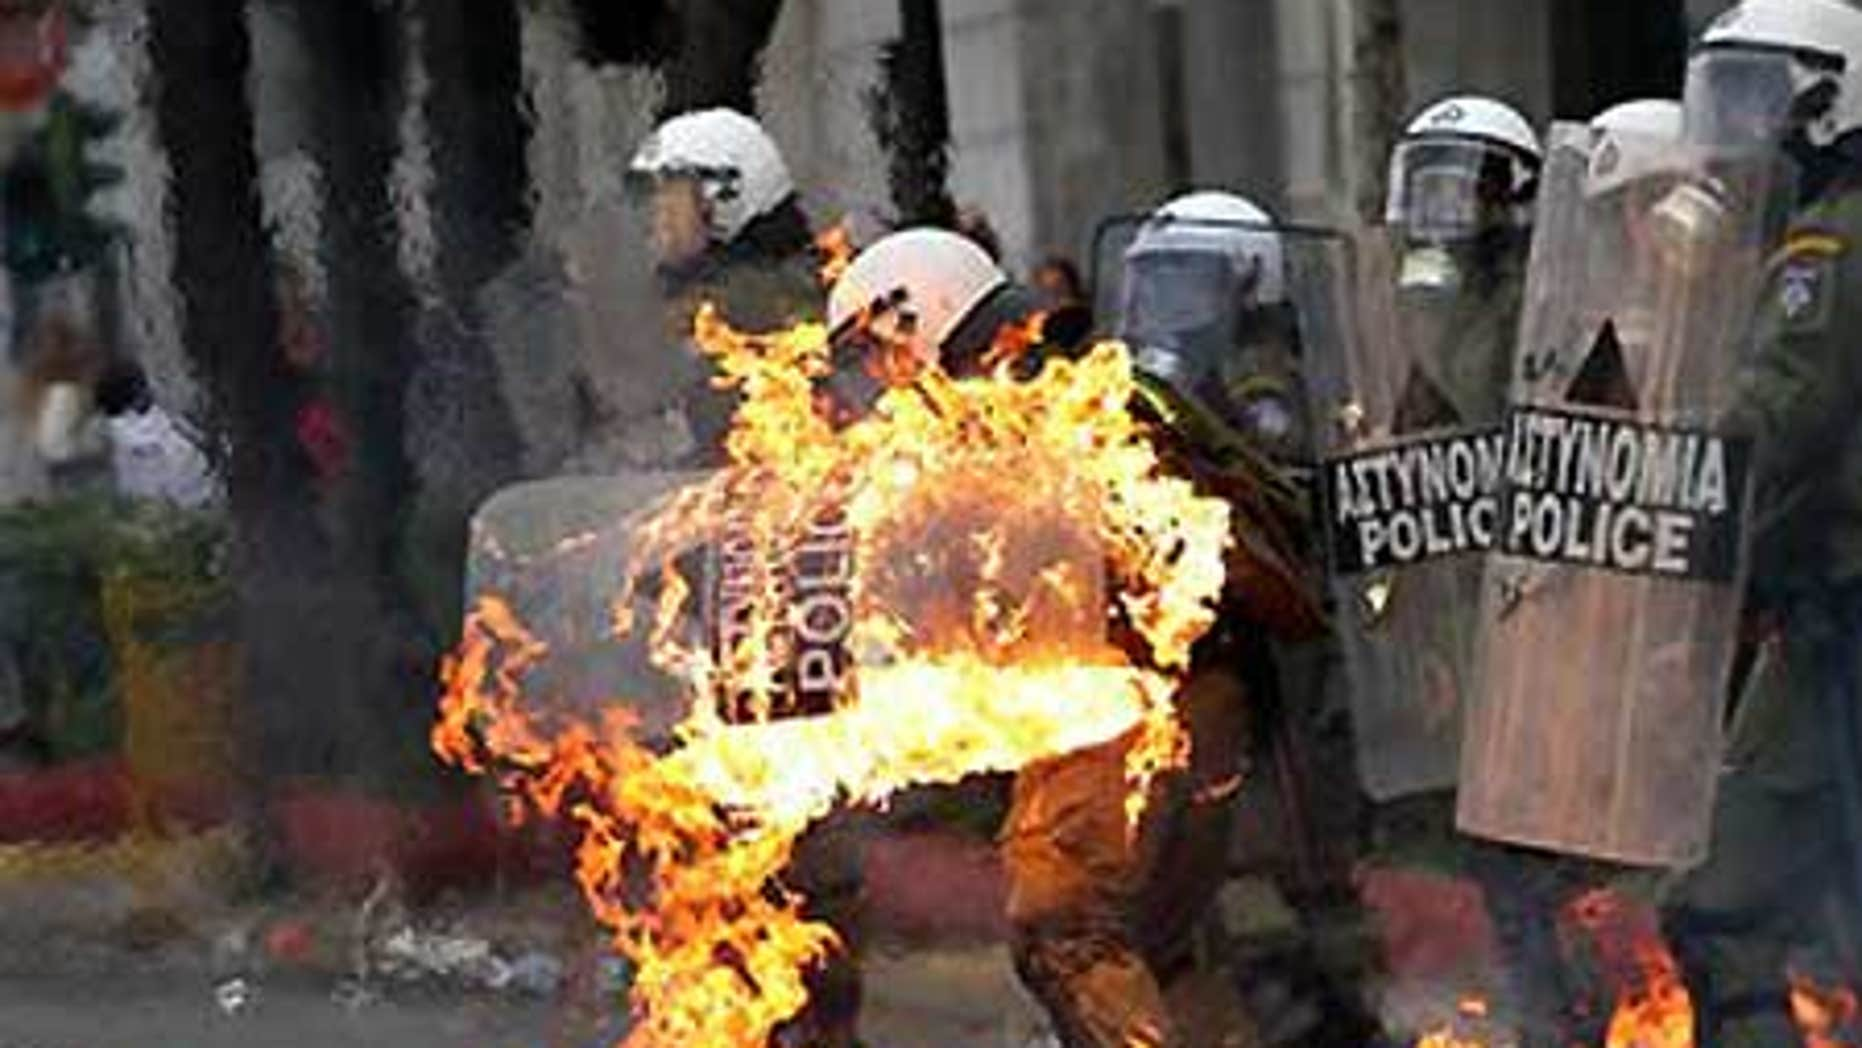 Dec. 6: A riot policeman's clothing catches fire after demonstrators threw petrol bombs at them, as violence erupted.